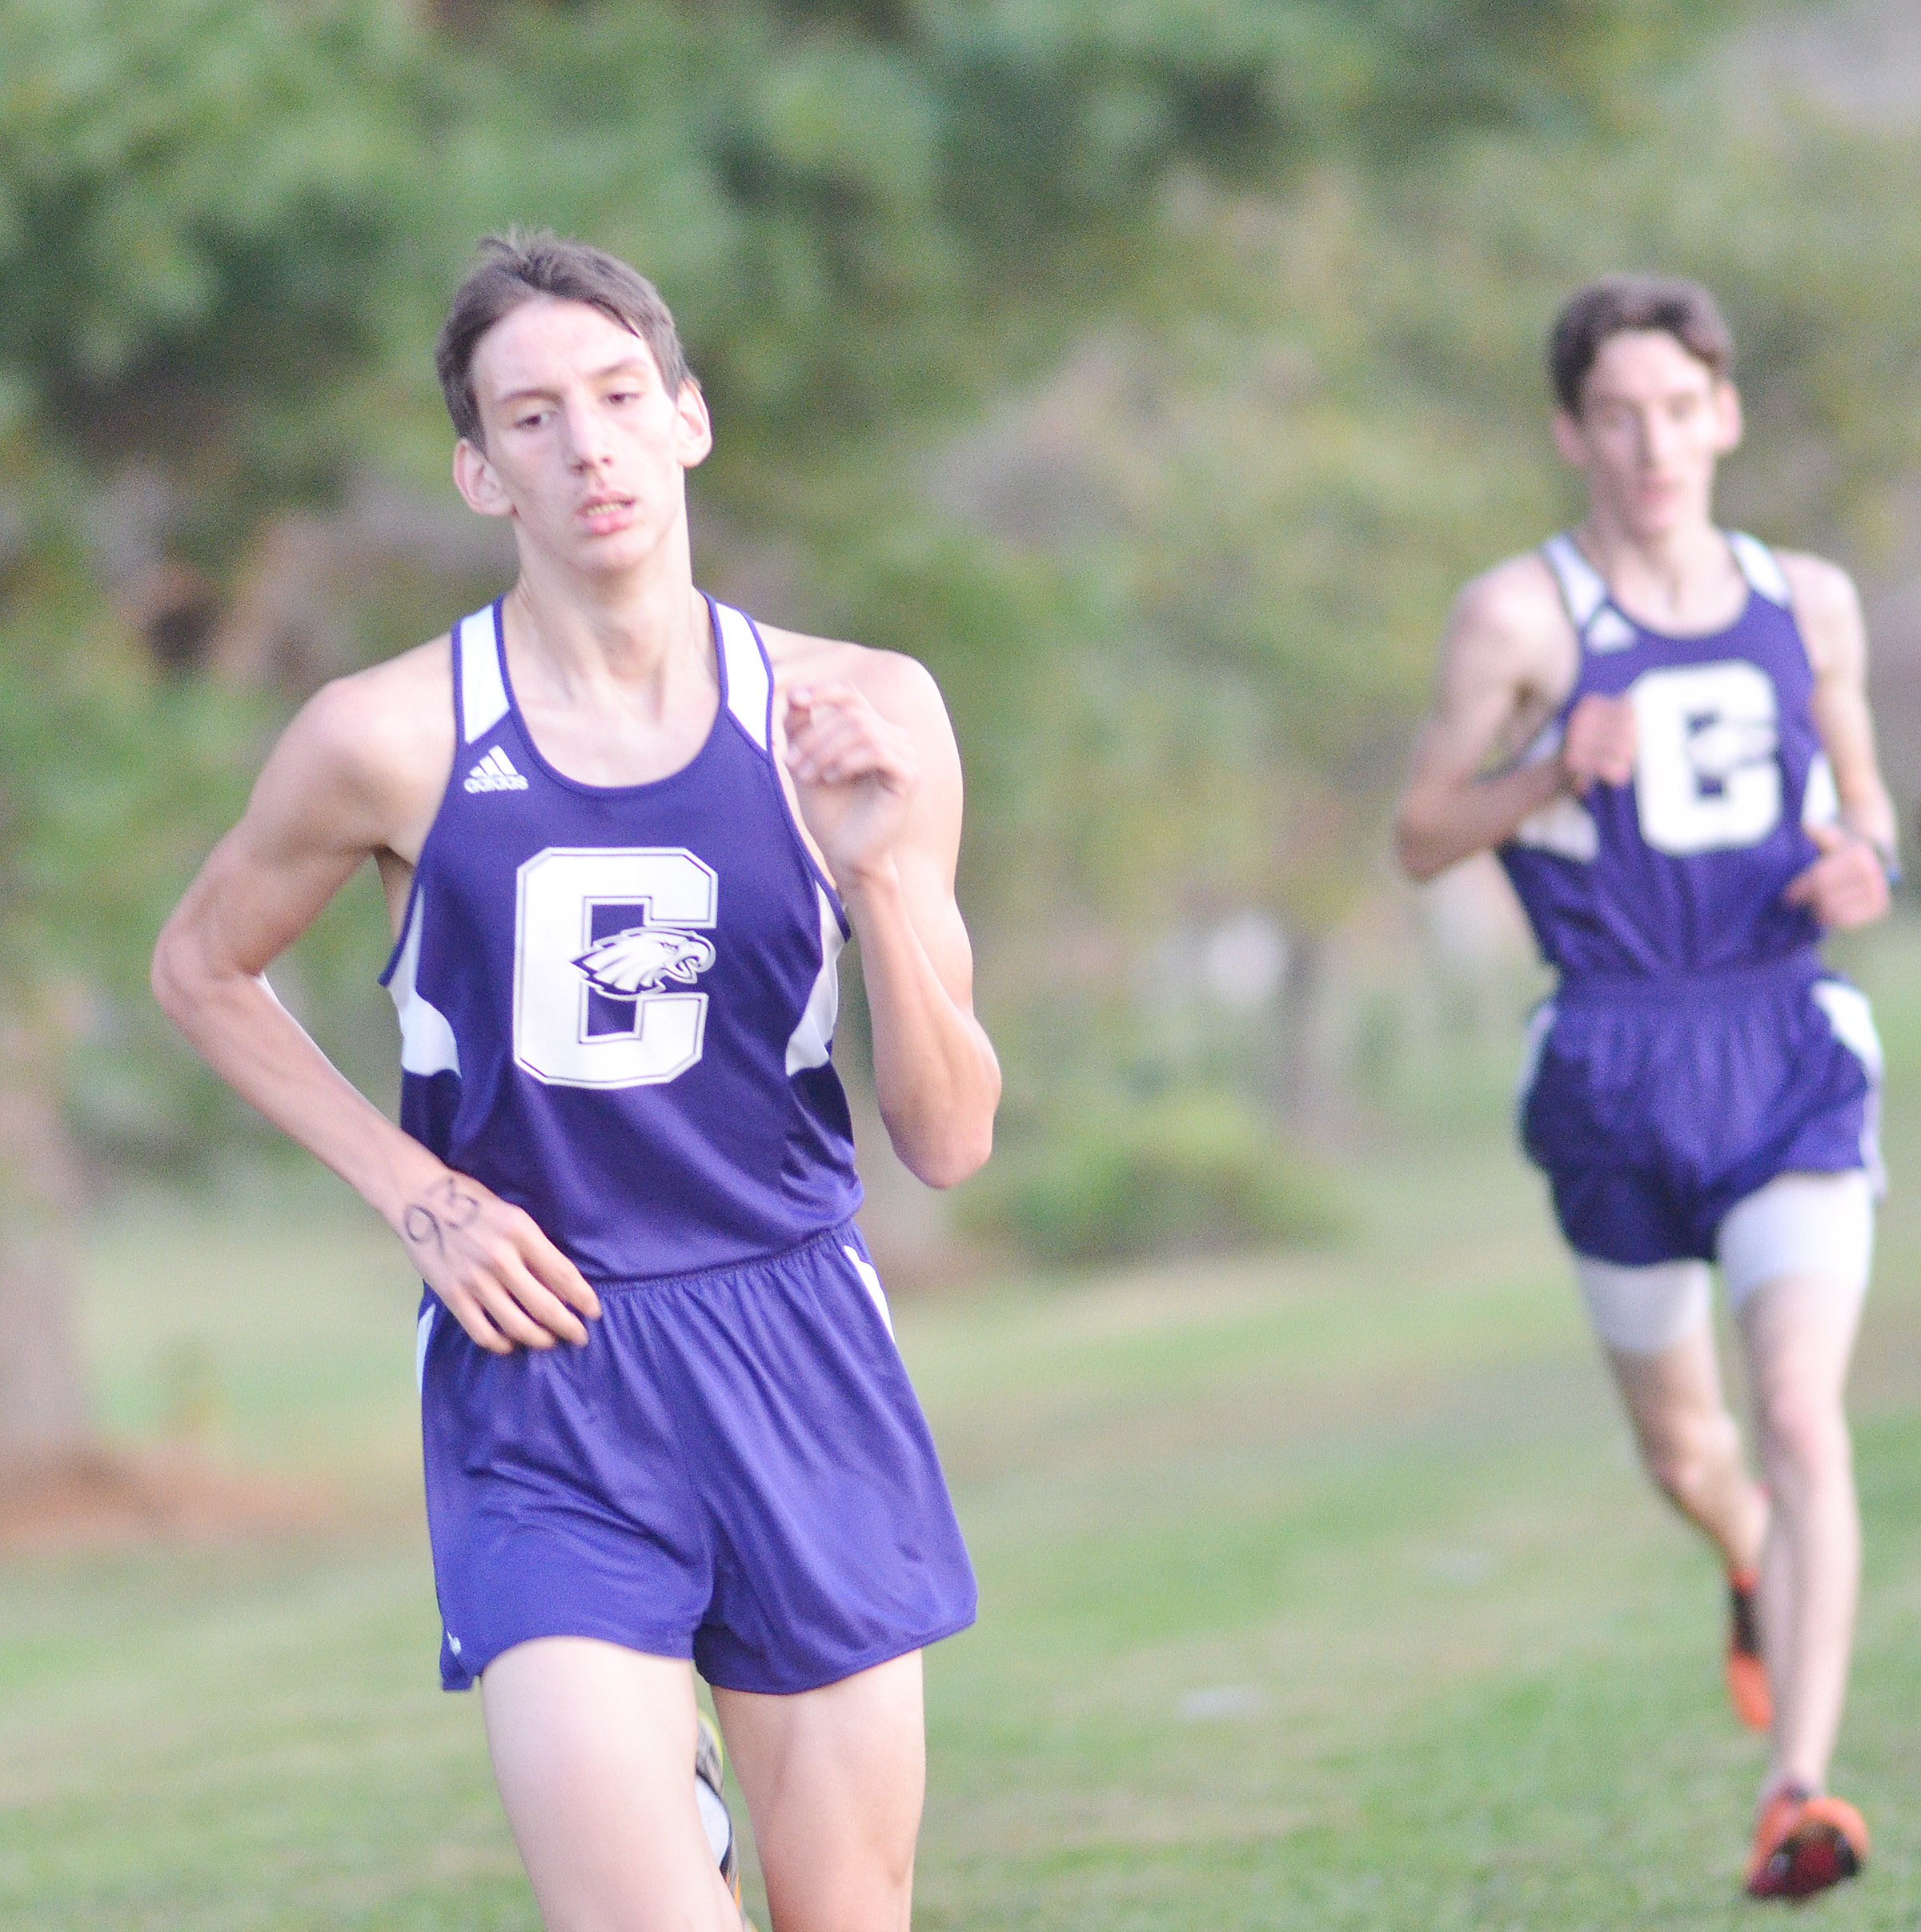 CHS junior Evan McAninch runs, as his twin brother Ian trails close behind.